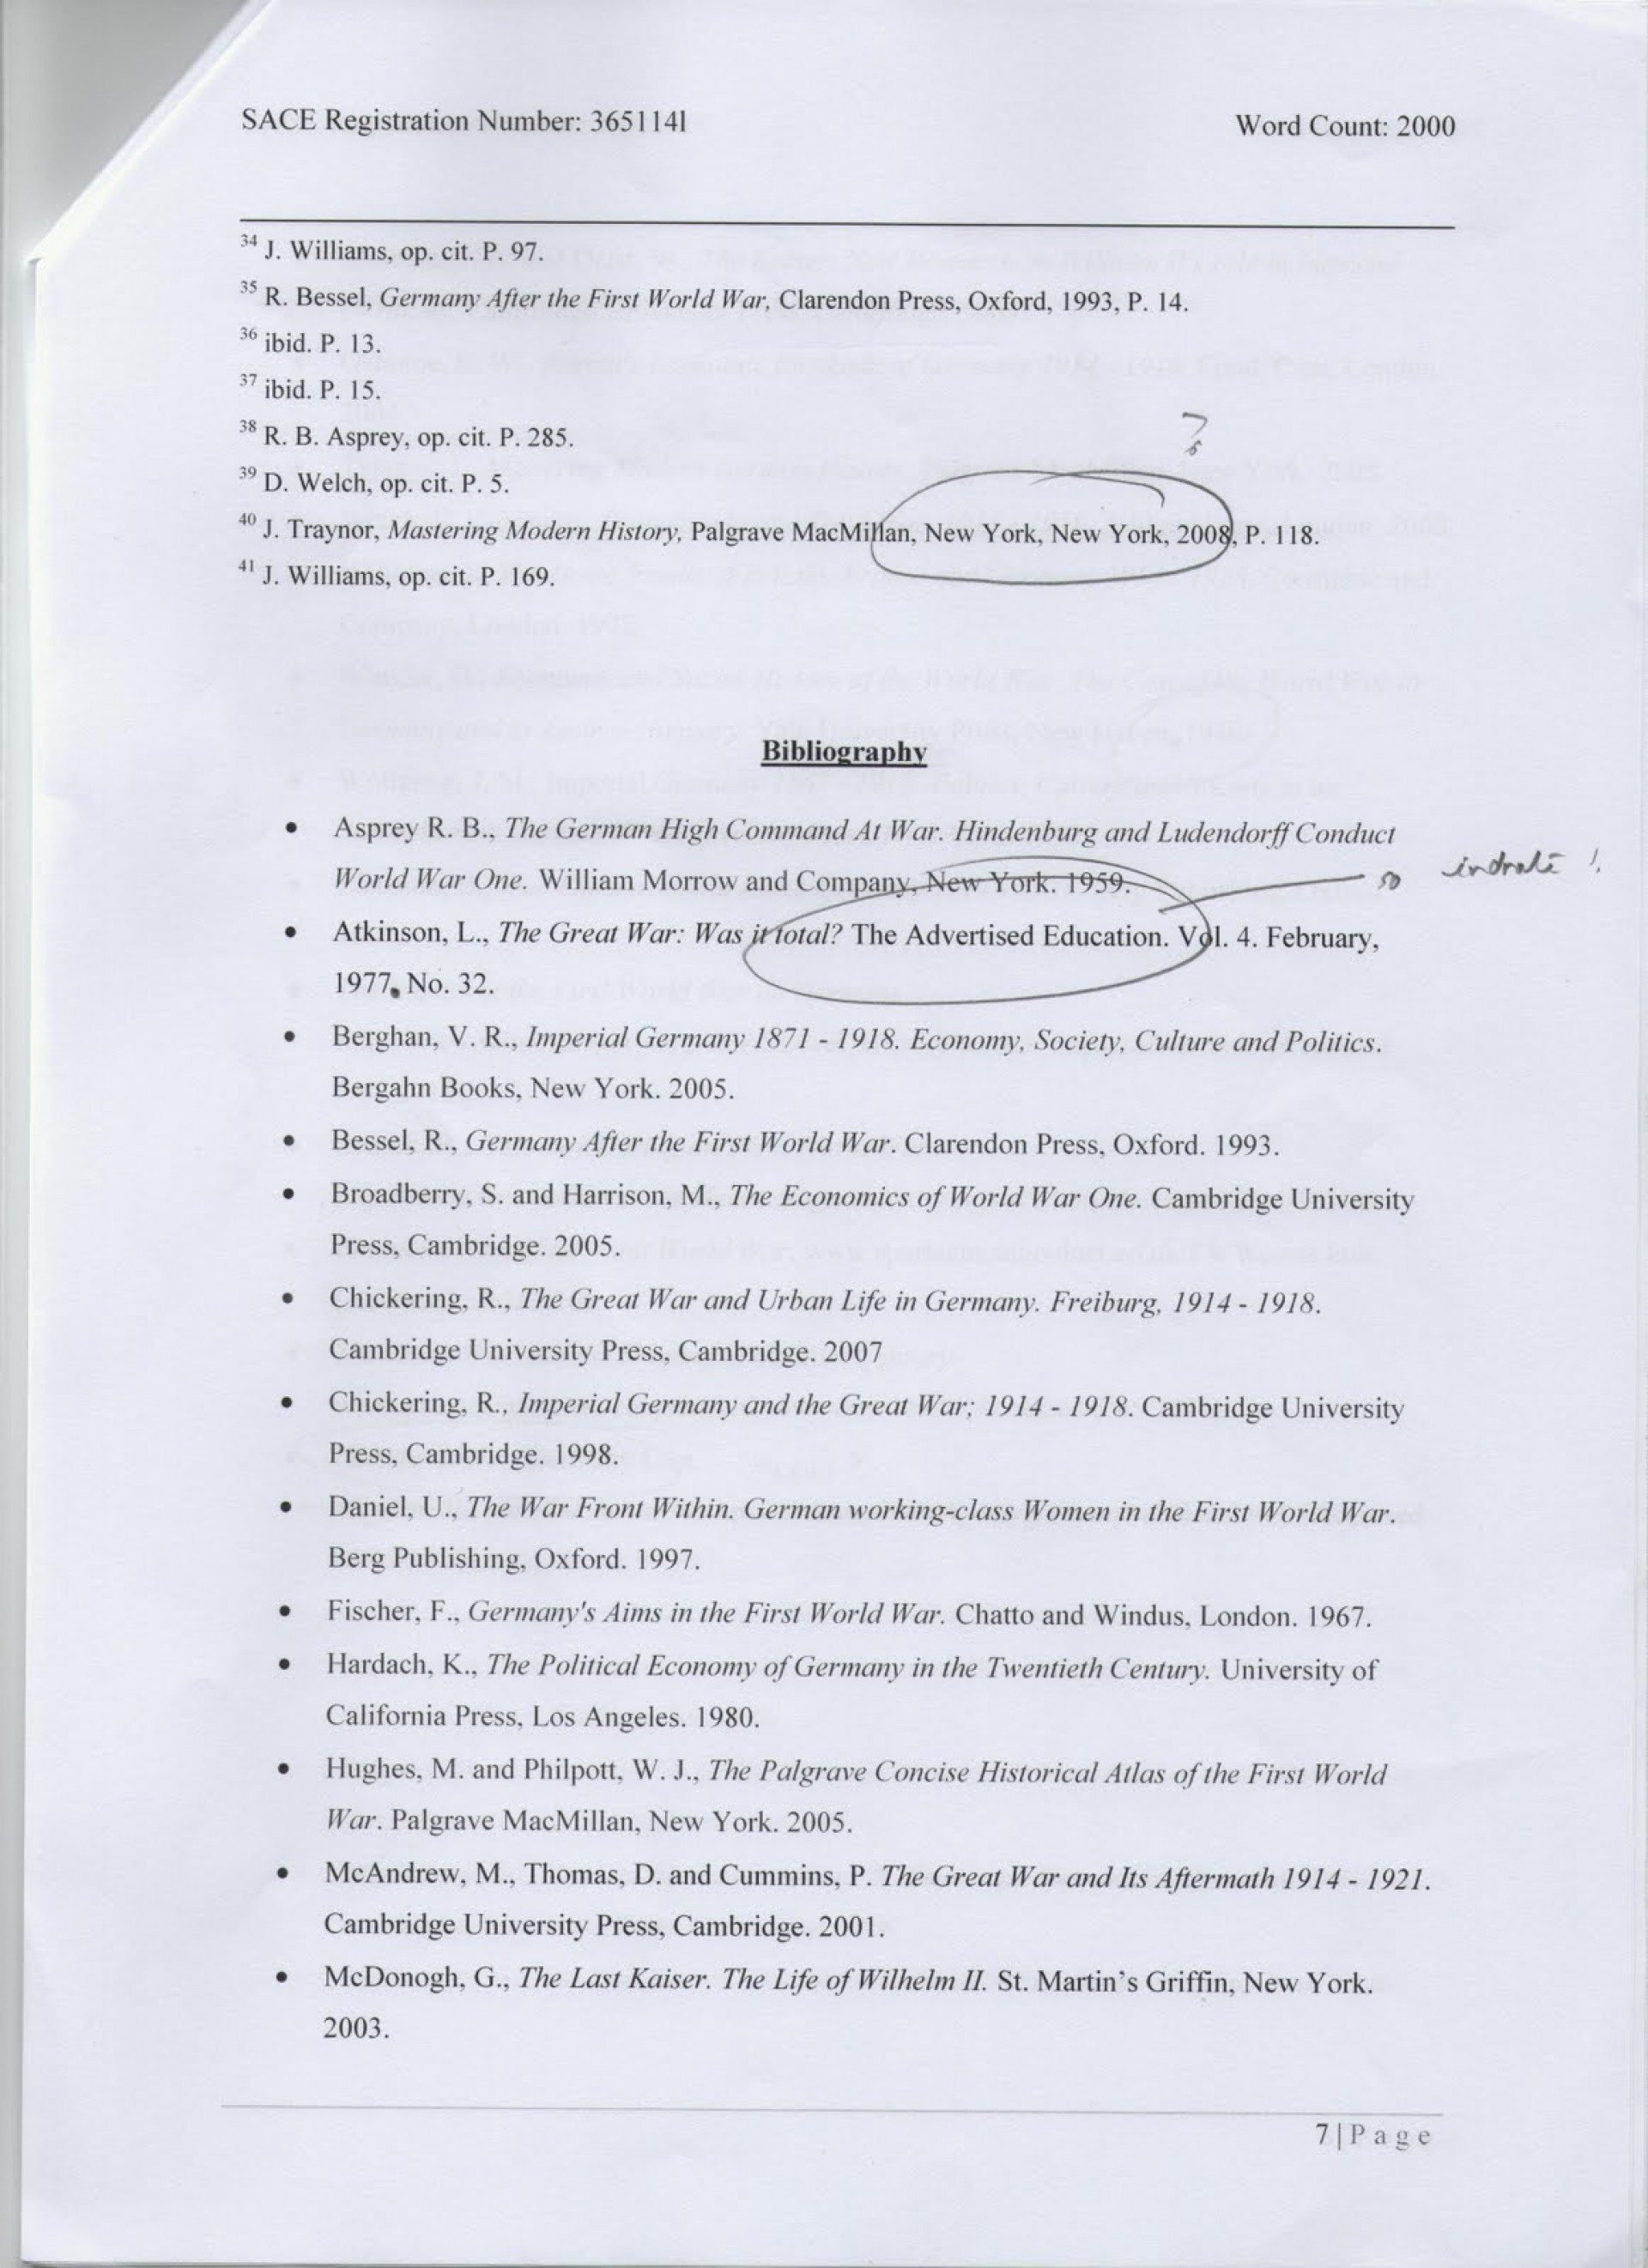 007 Uchicago Essay Questions Example Unique How To Answer 2017 University Of Chicago 1920